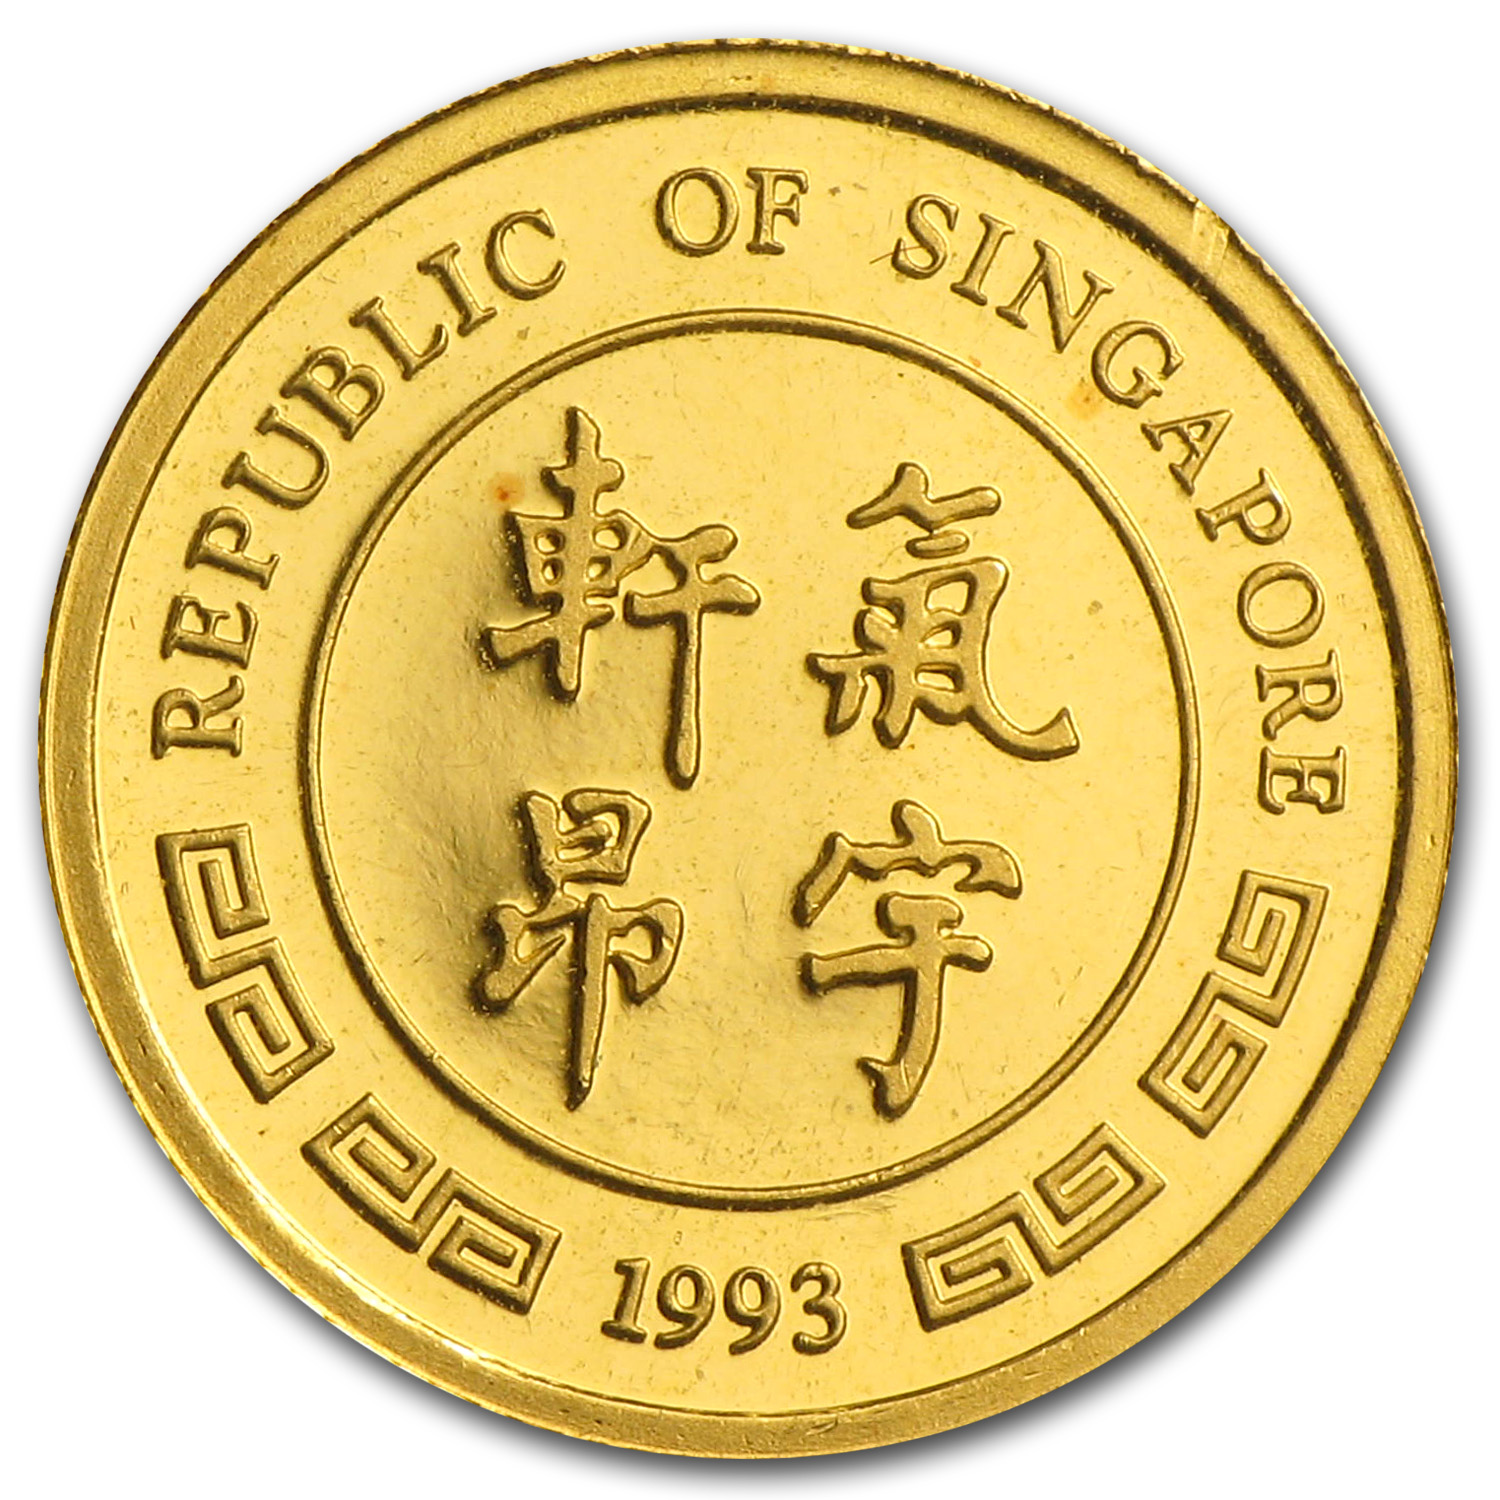 Singapore 1993 5 Singold 1/20 oz Gold Proof Rooster